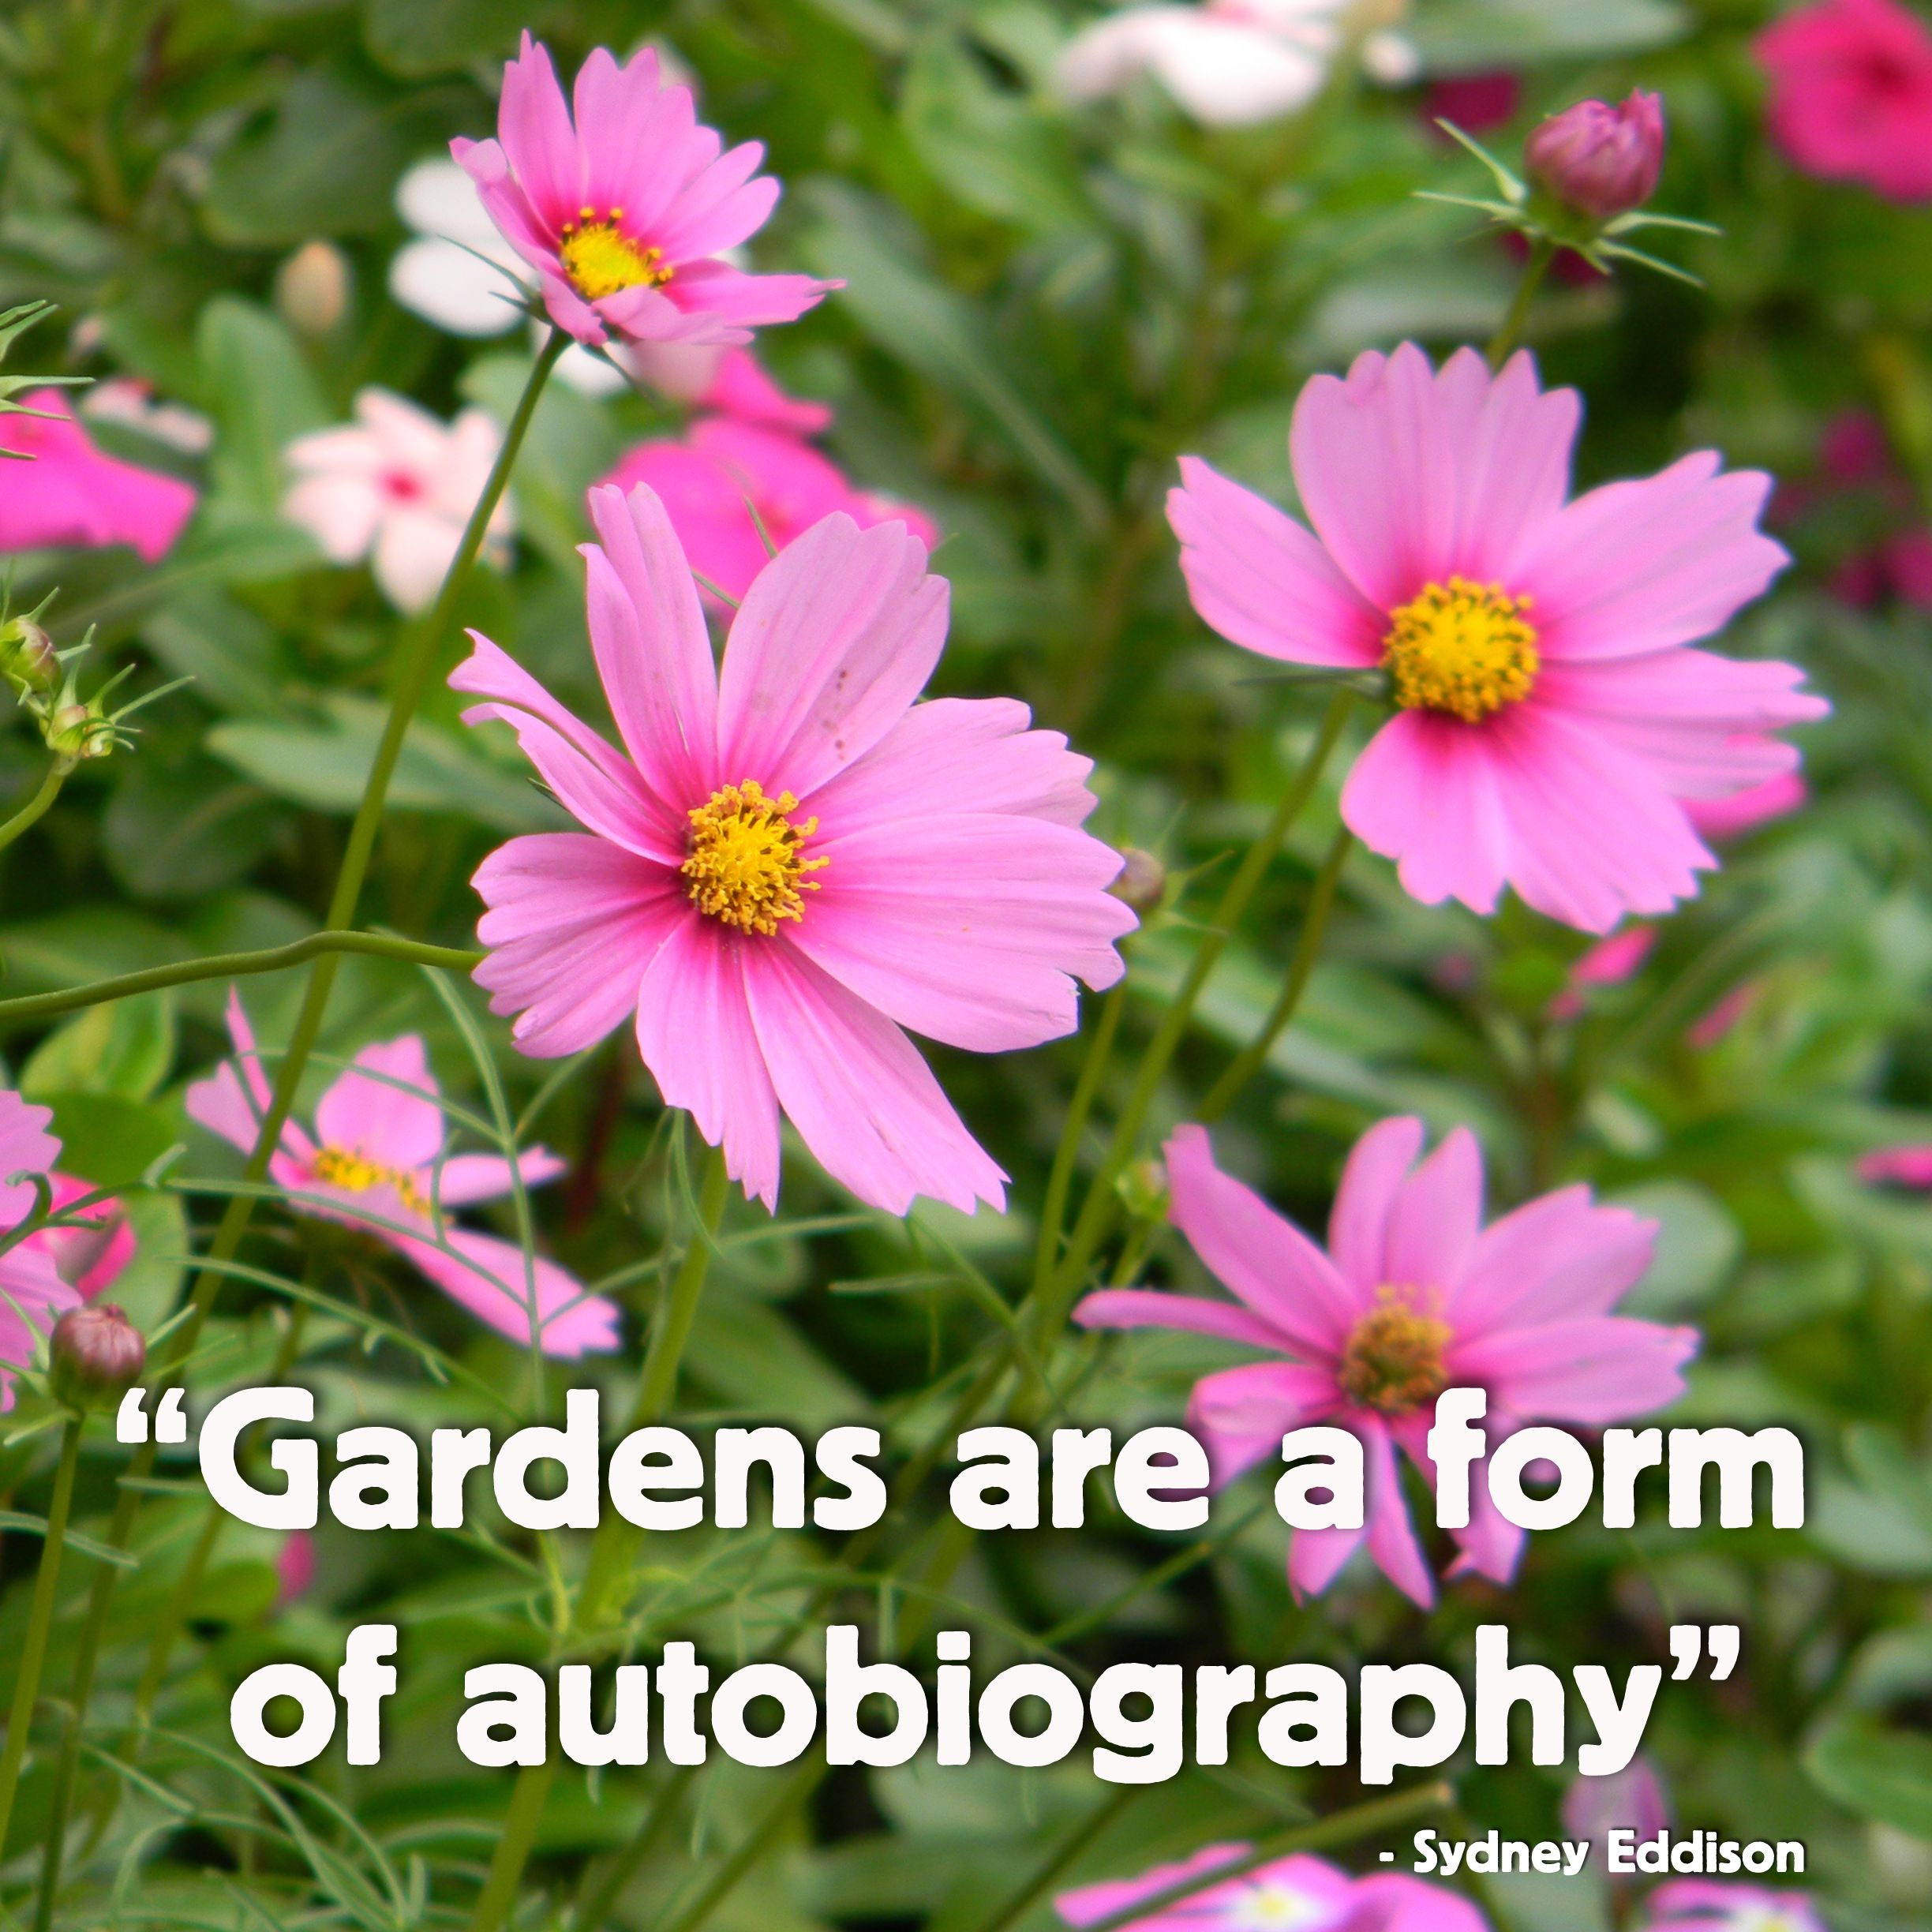 gardens are a form of autobiography course there s the wishful